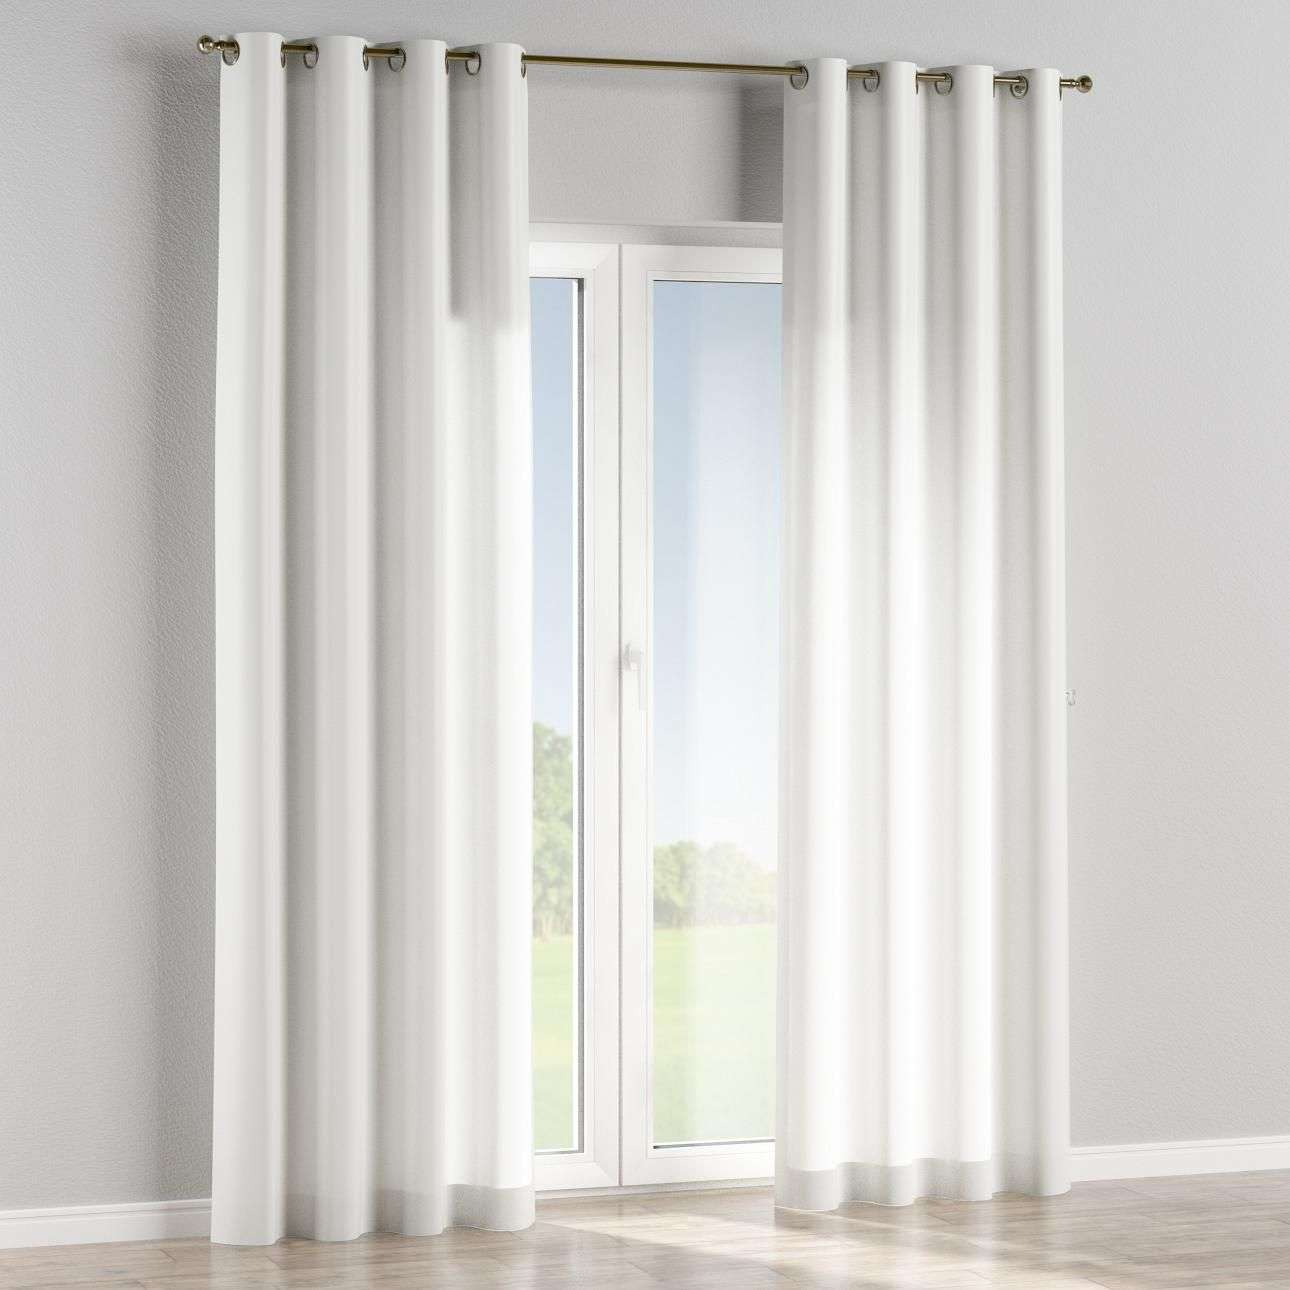 Eyelet curtains in collection Jupiter, fabric: 127-72